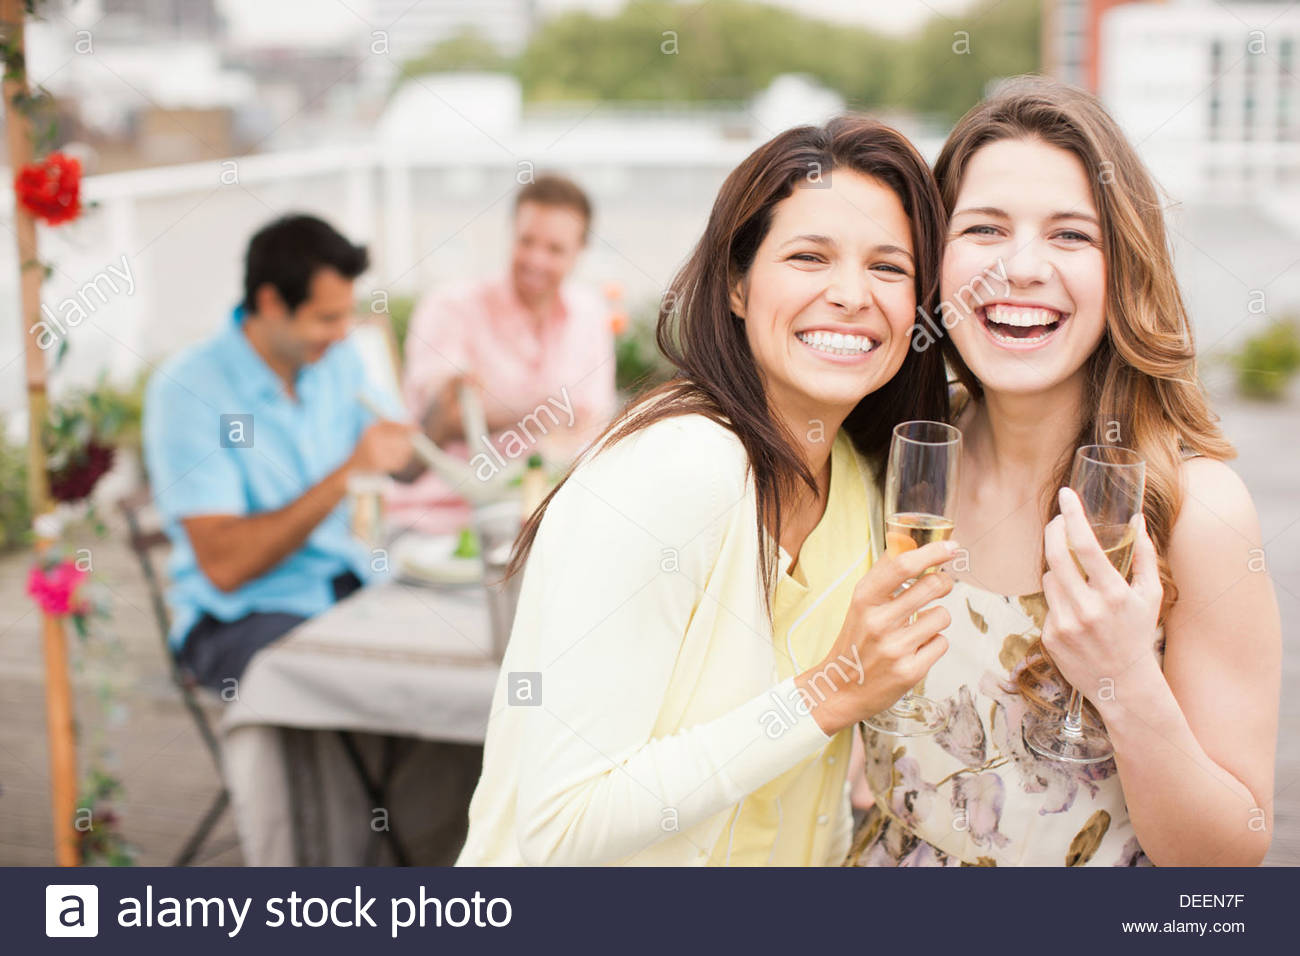 Laughing friends drinking Champagne at outdoor party Photo Stock